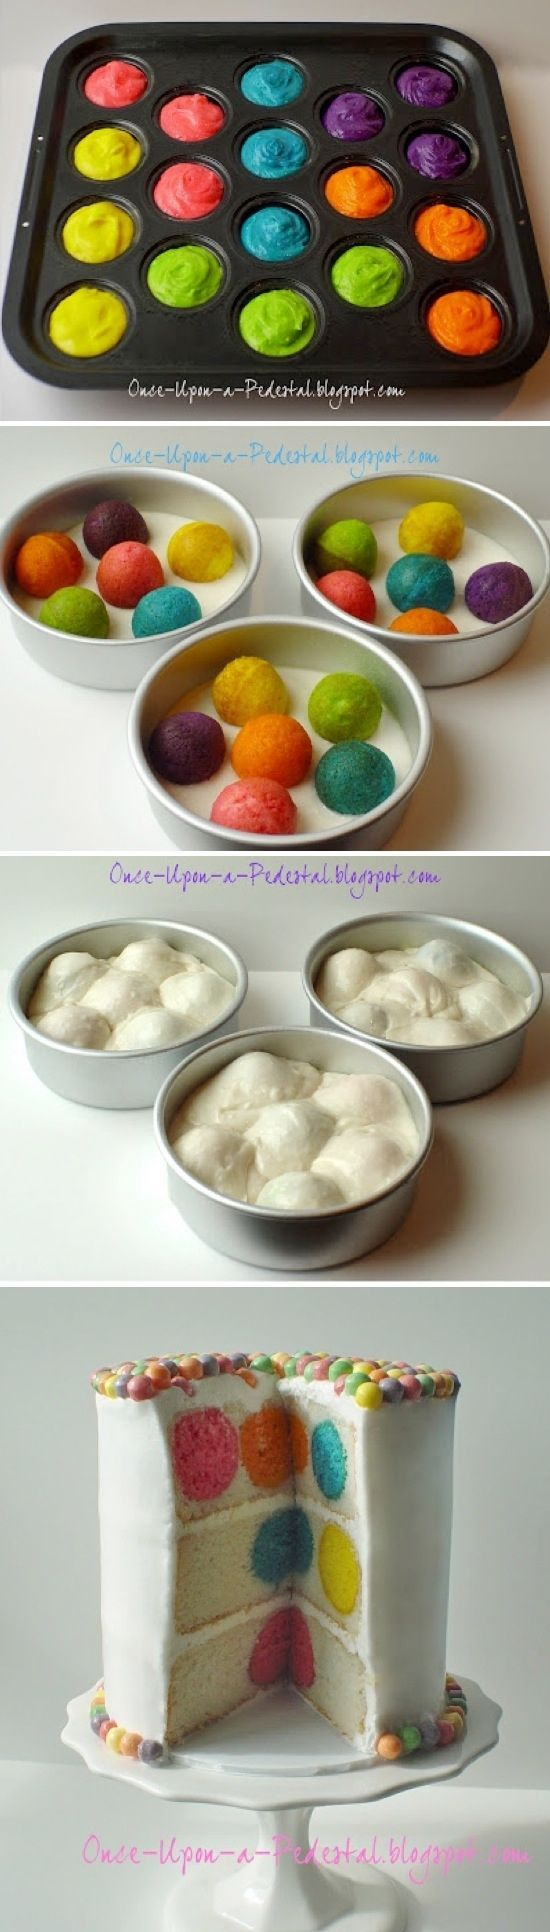 There are some cool uses for food dye in this post